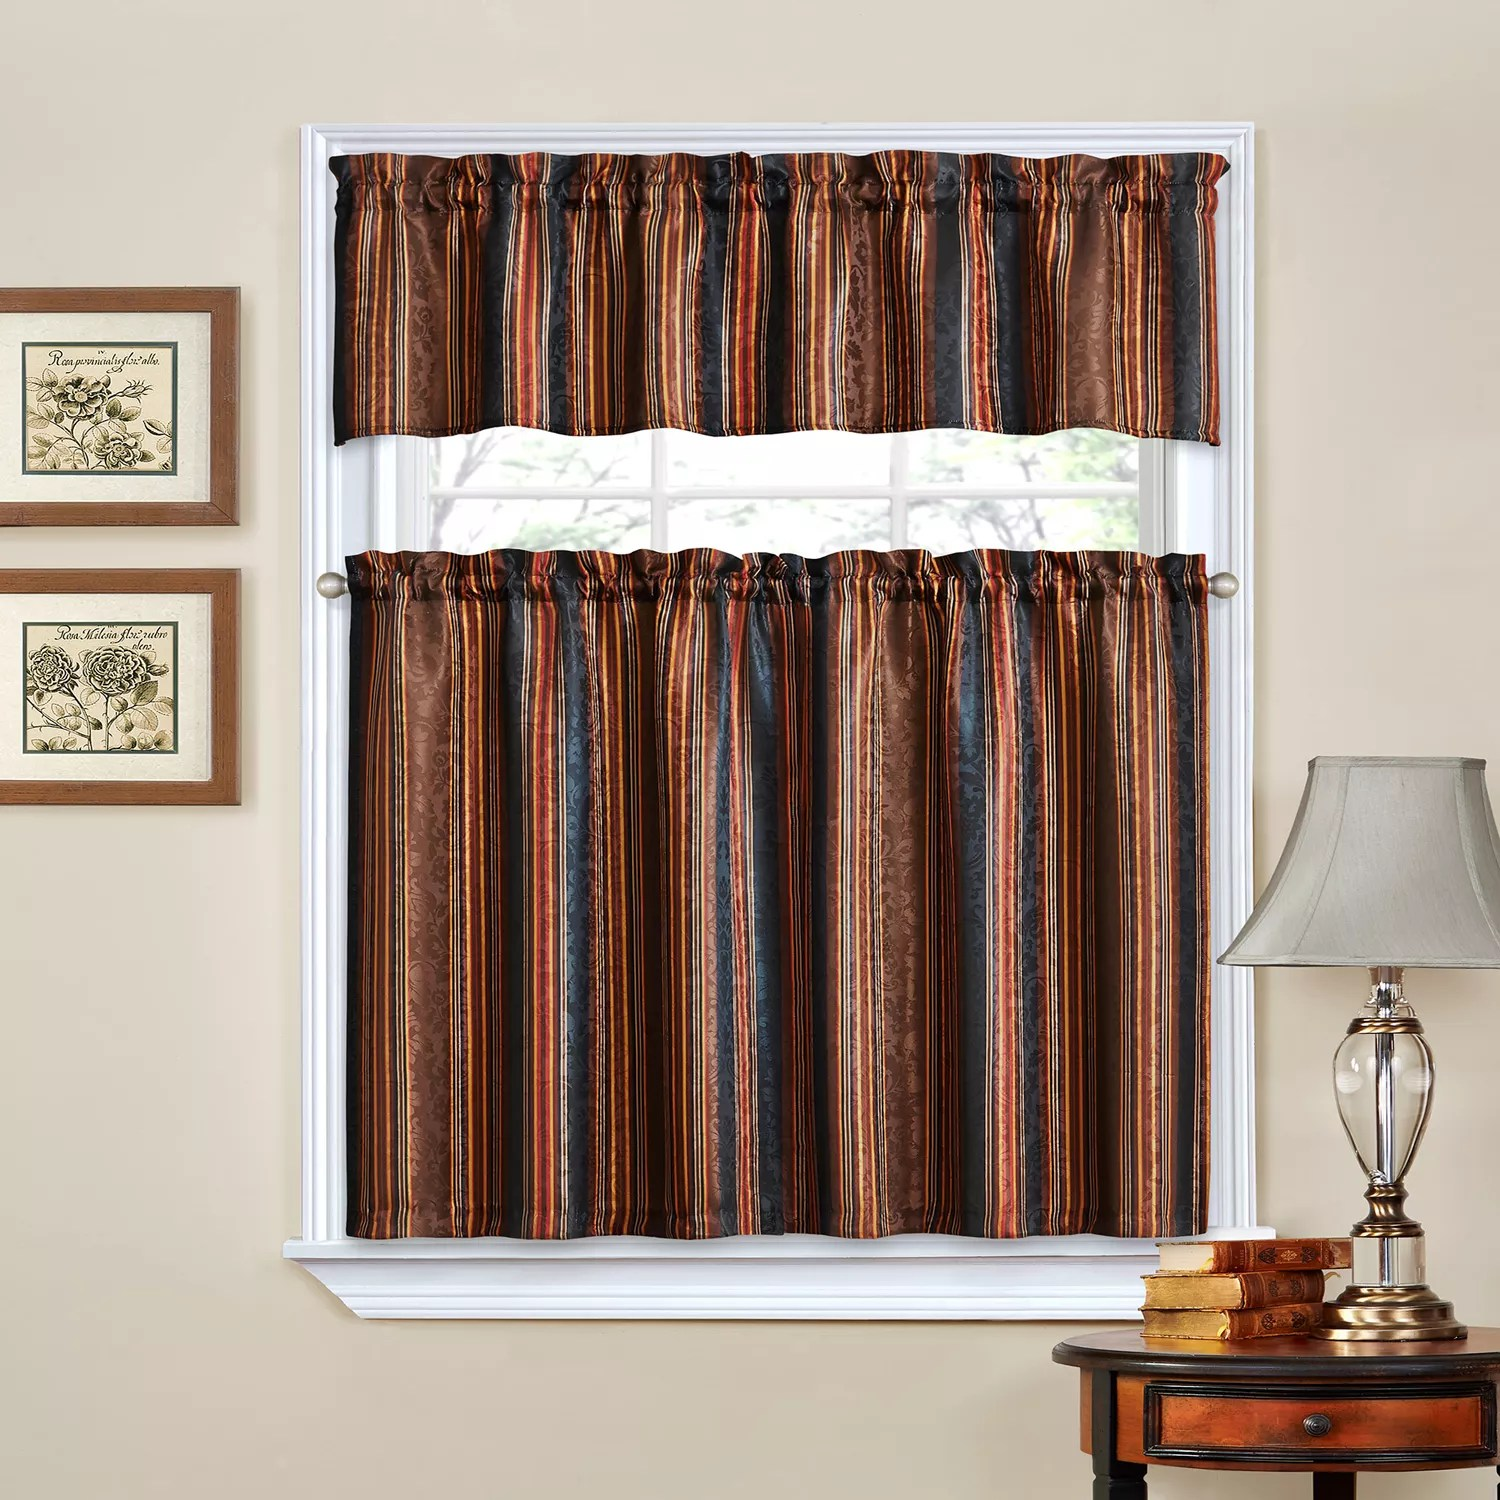 kitchen curtains kohls tile floors black drapes window treatments home decor kohl s traditions by waverly stripe ensemble tier valance curtain set